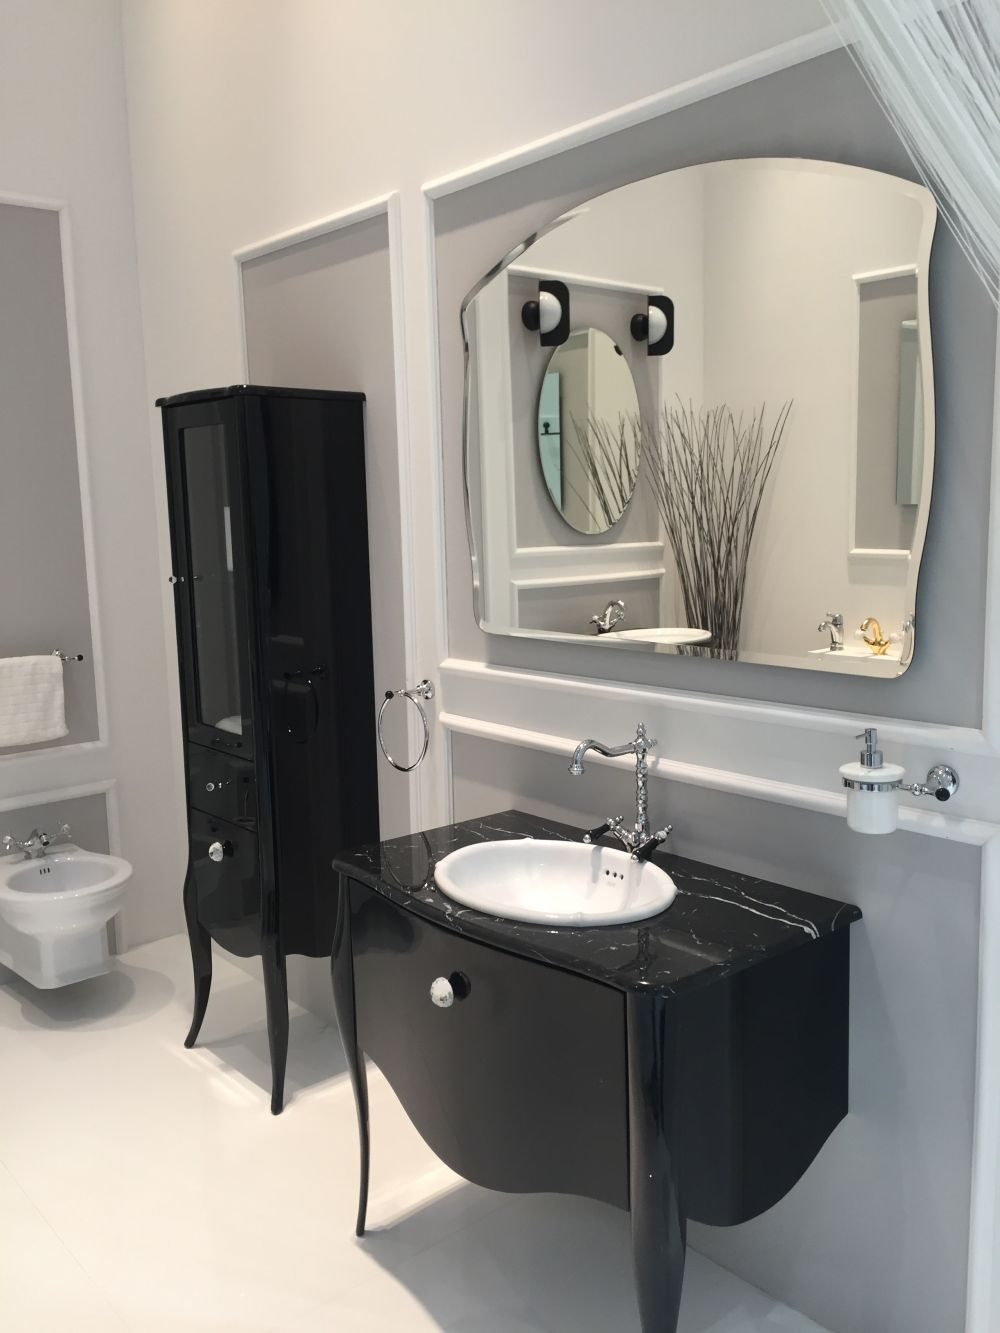 sink cabinets and vanity bathroom cabinet single design modern white double sinks grey floating shelves black inch bath vanities vessel